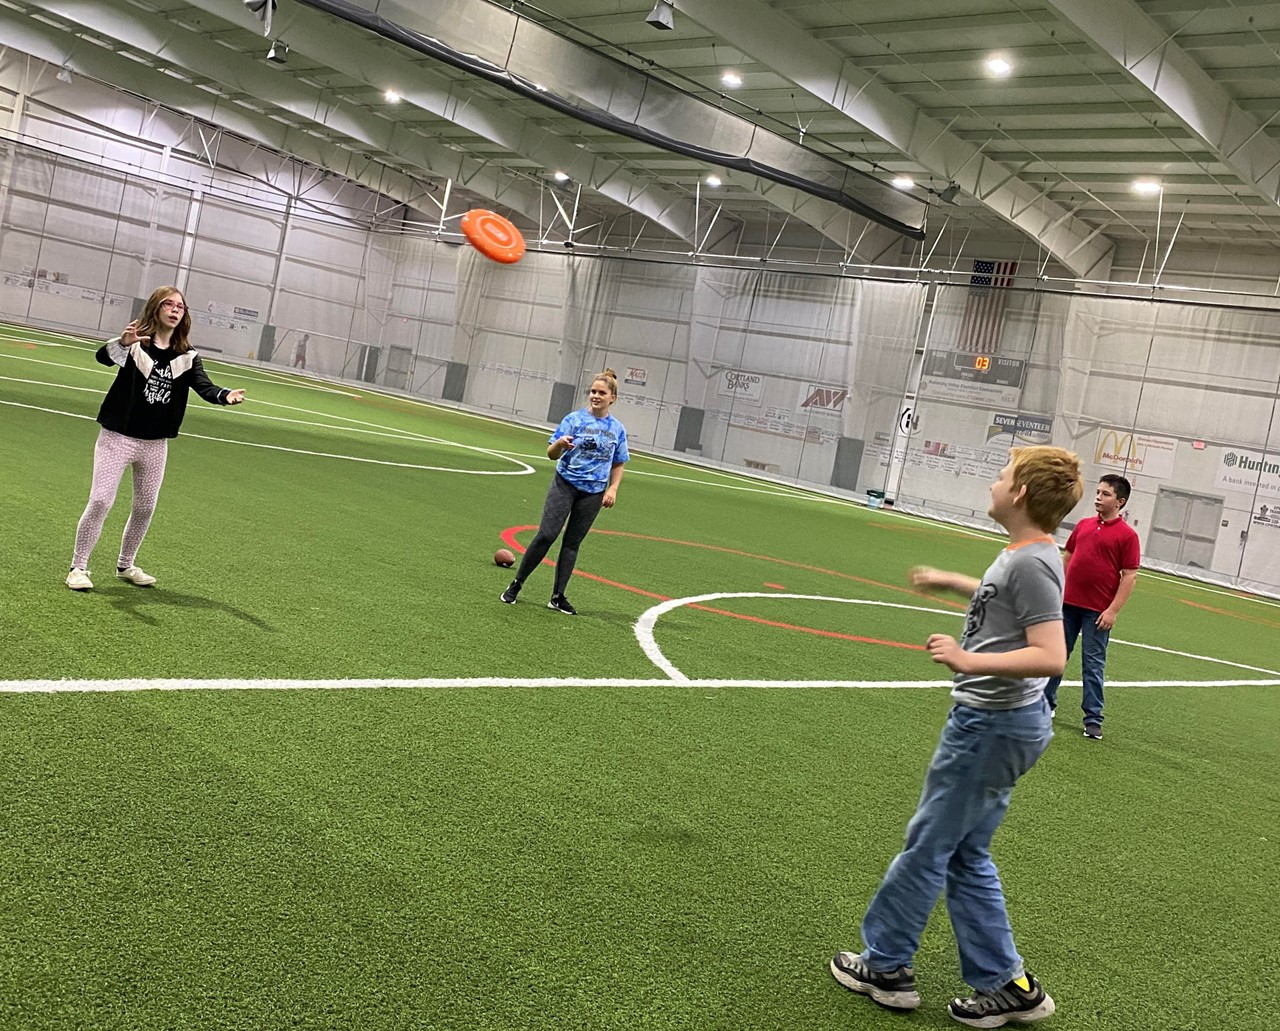 TCESC ED Students get active during the Summer Recovery Program at the Niles Wellness Center.